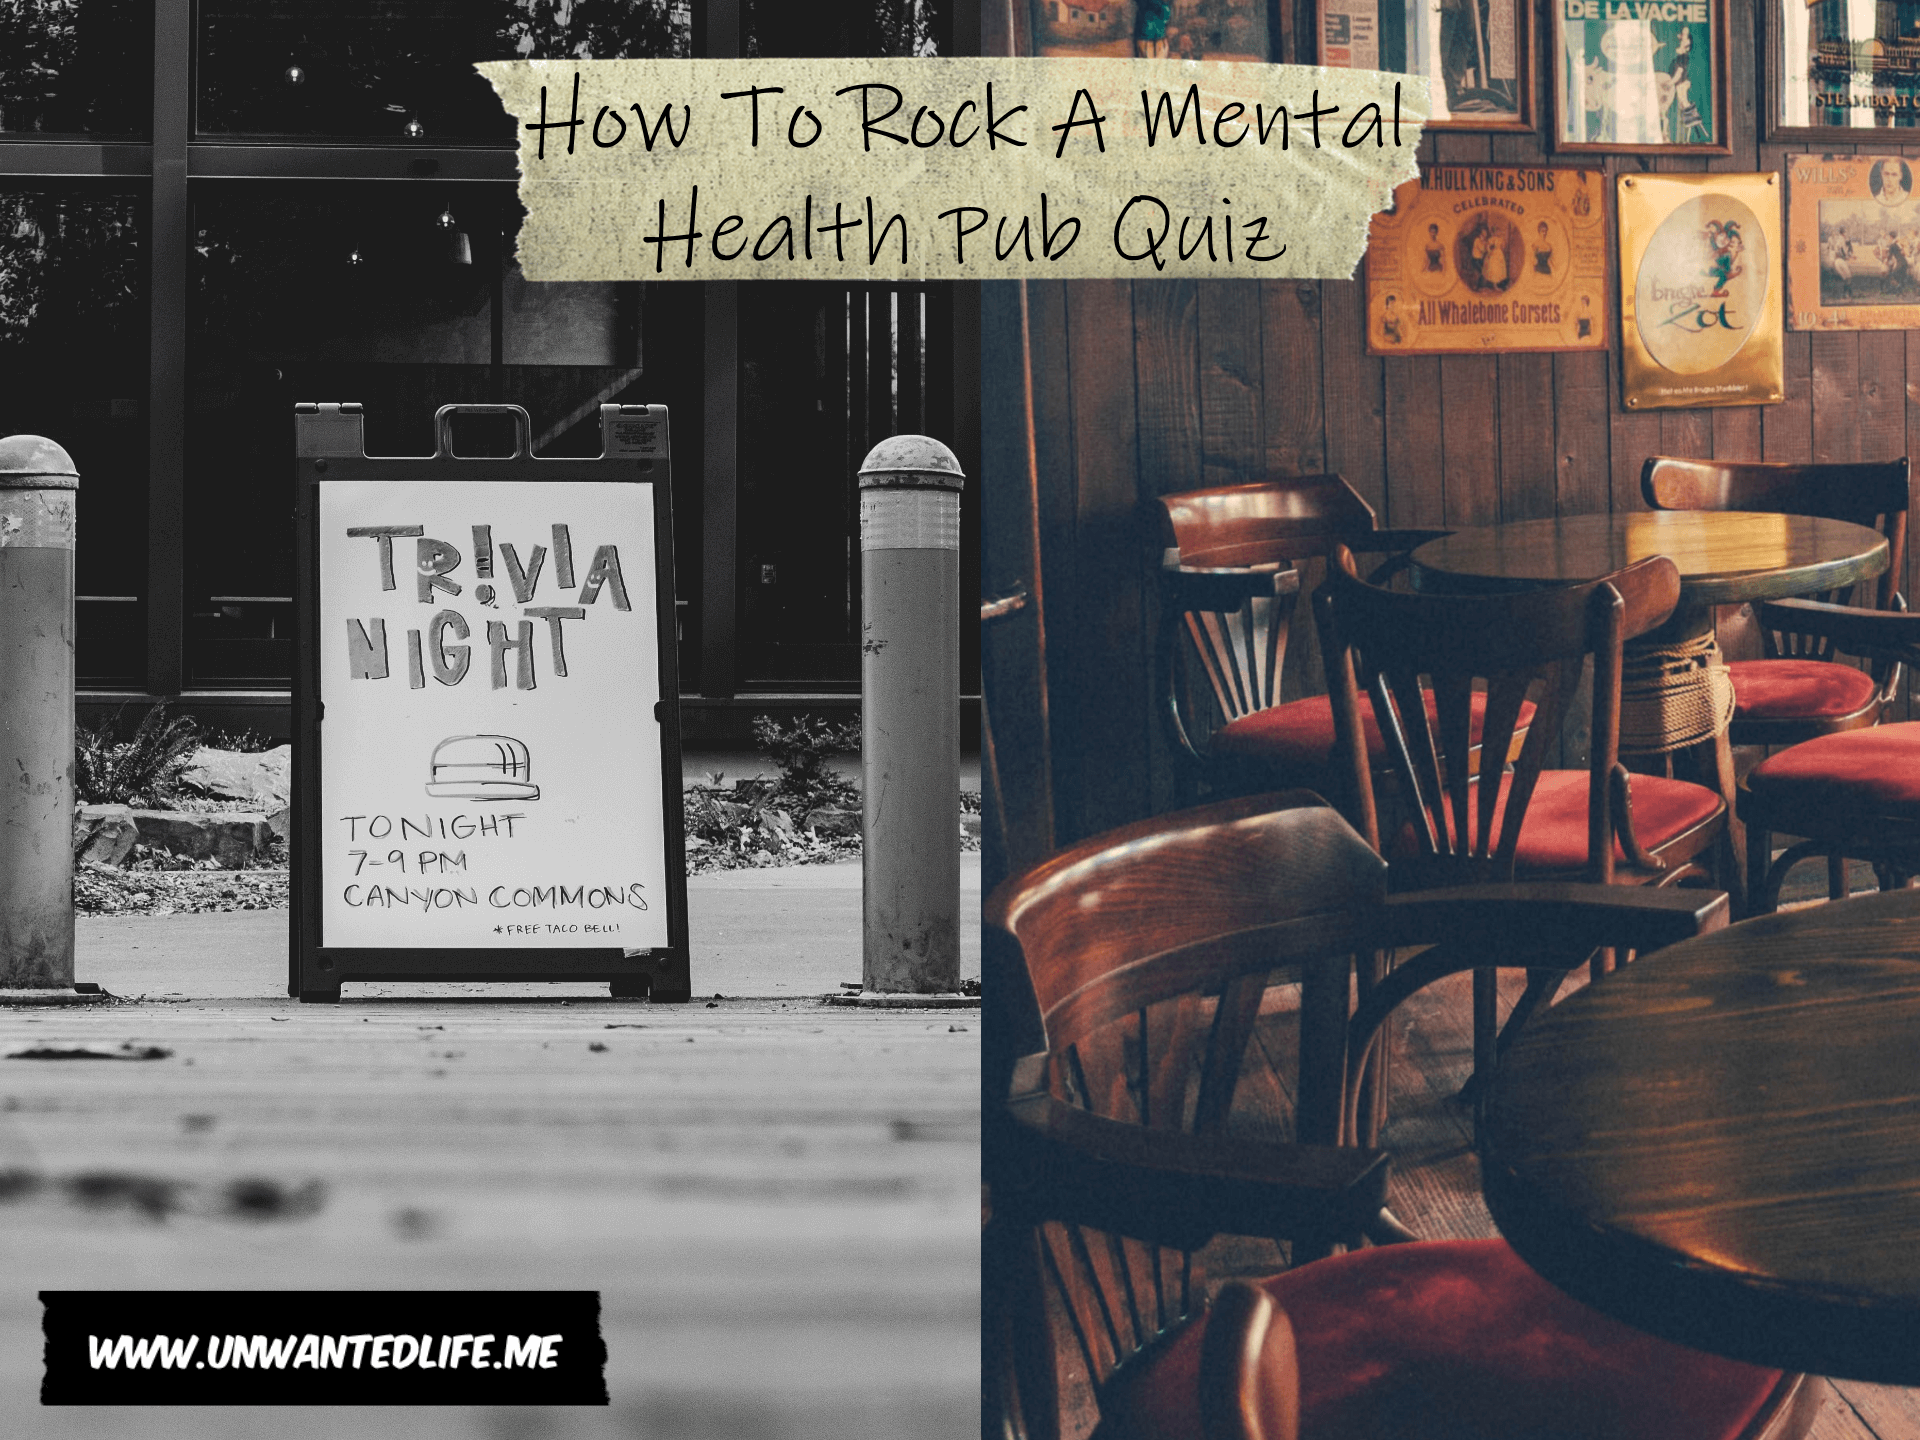 The image is split in two down the middle with the left image of trivia night sign and the right image is a photo of the inside of a pub to represent - How To Rock A Mental Health Pub Quiz